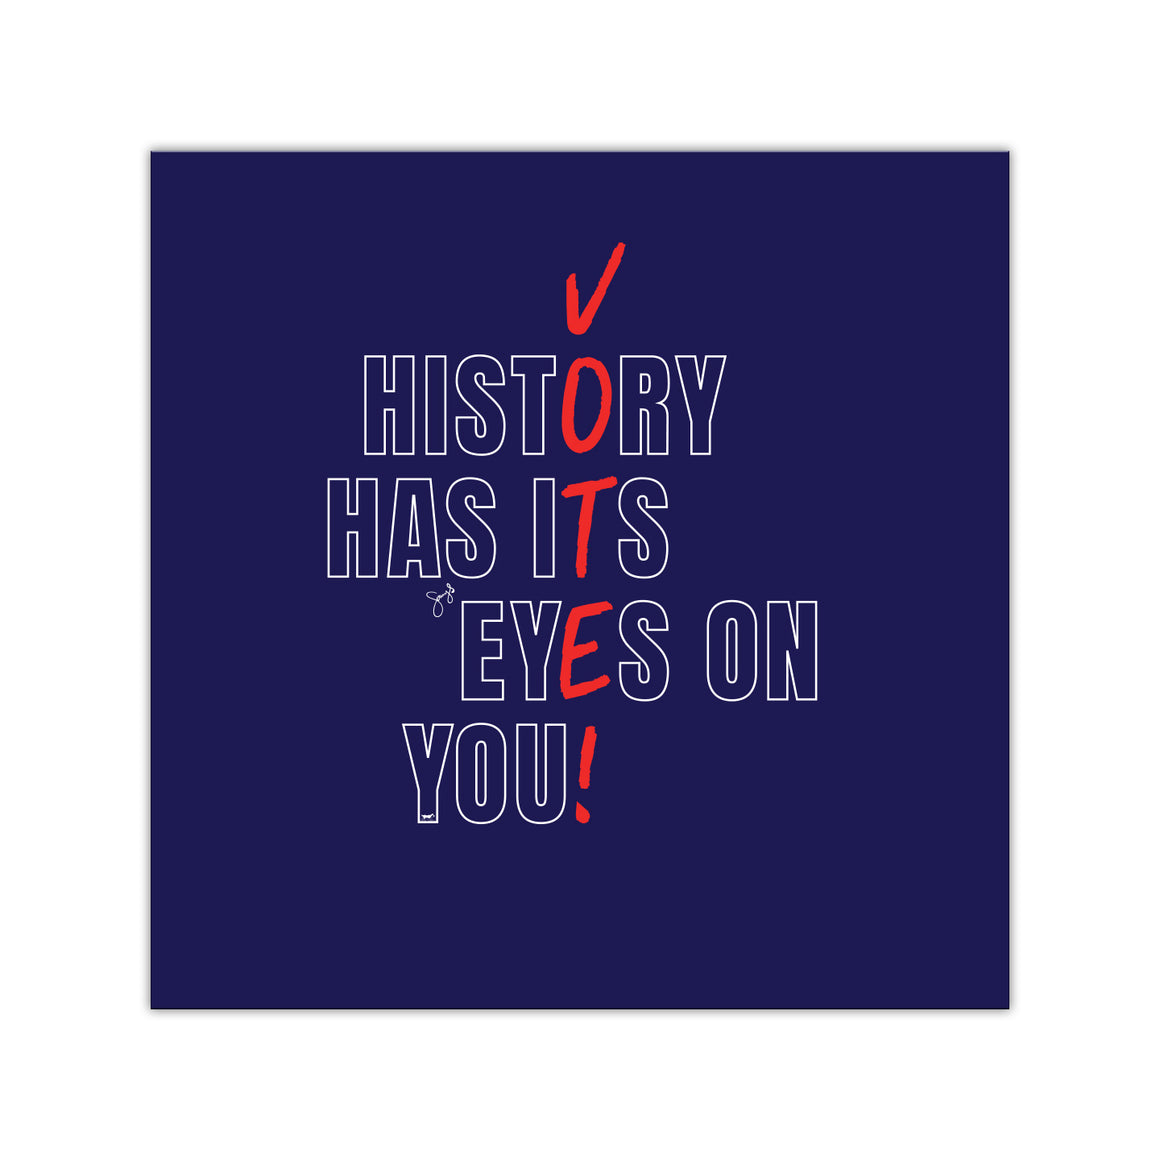 "History Has Its Eyes on You - VOTE! - 4"" Magnet - Blue"